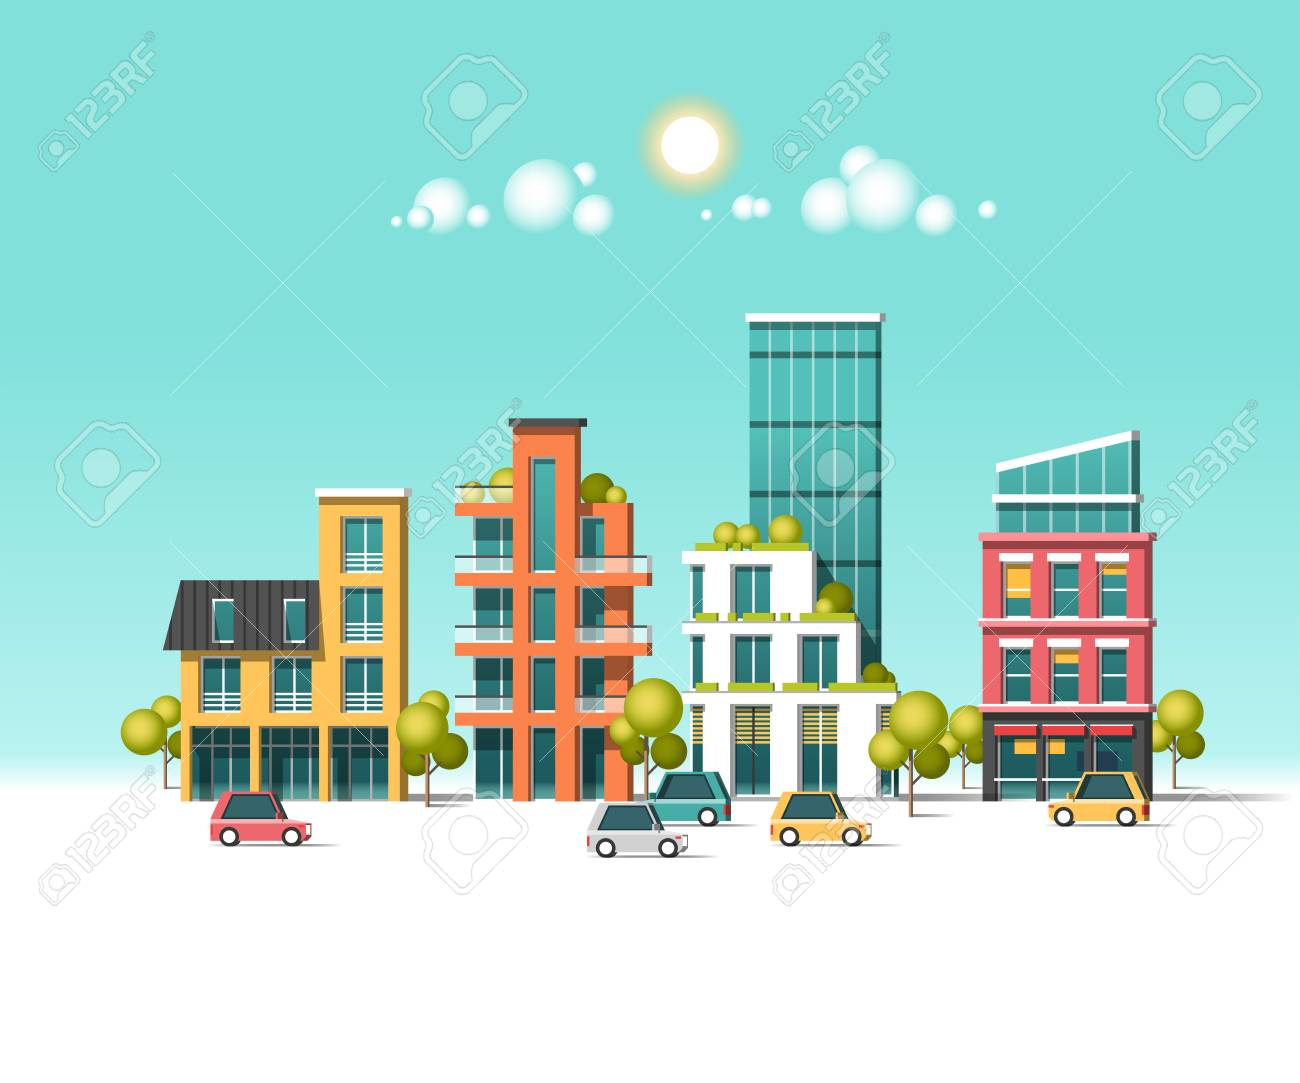 Green energy and eco friendly city flat vector illustration. - 83693585